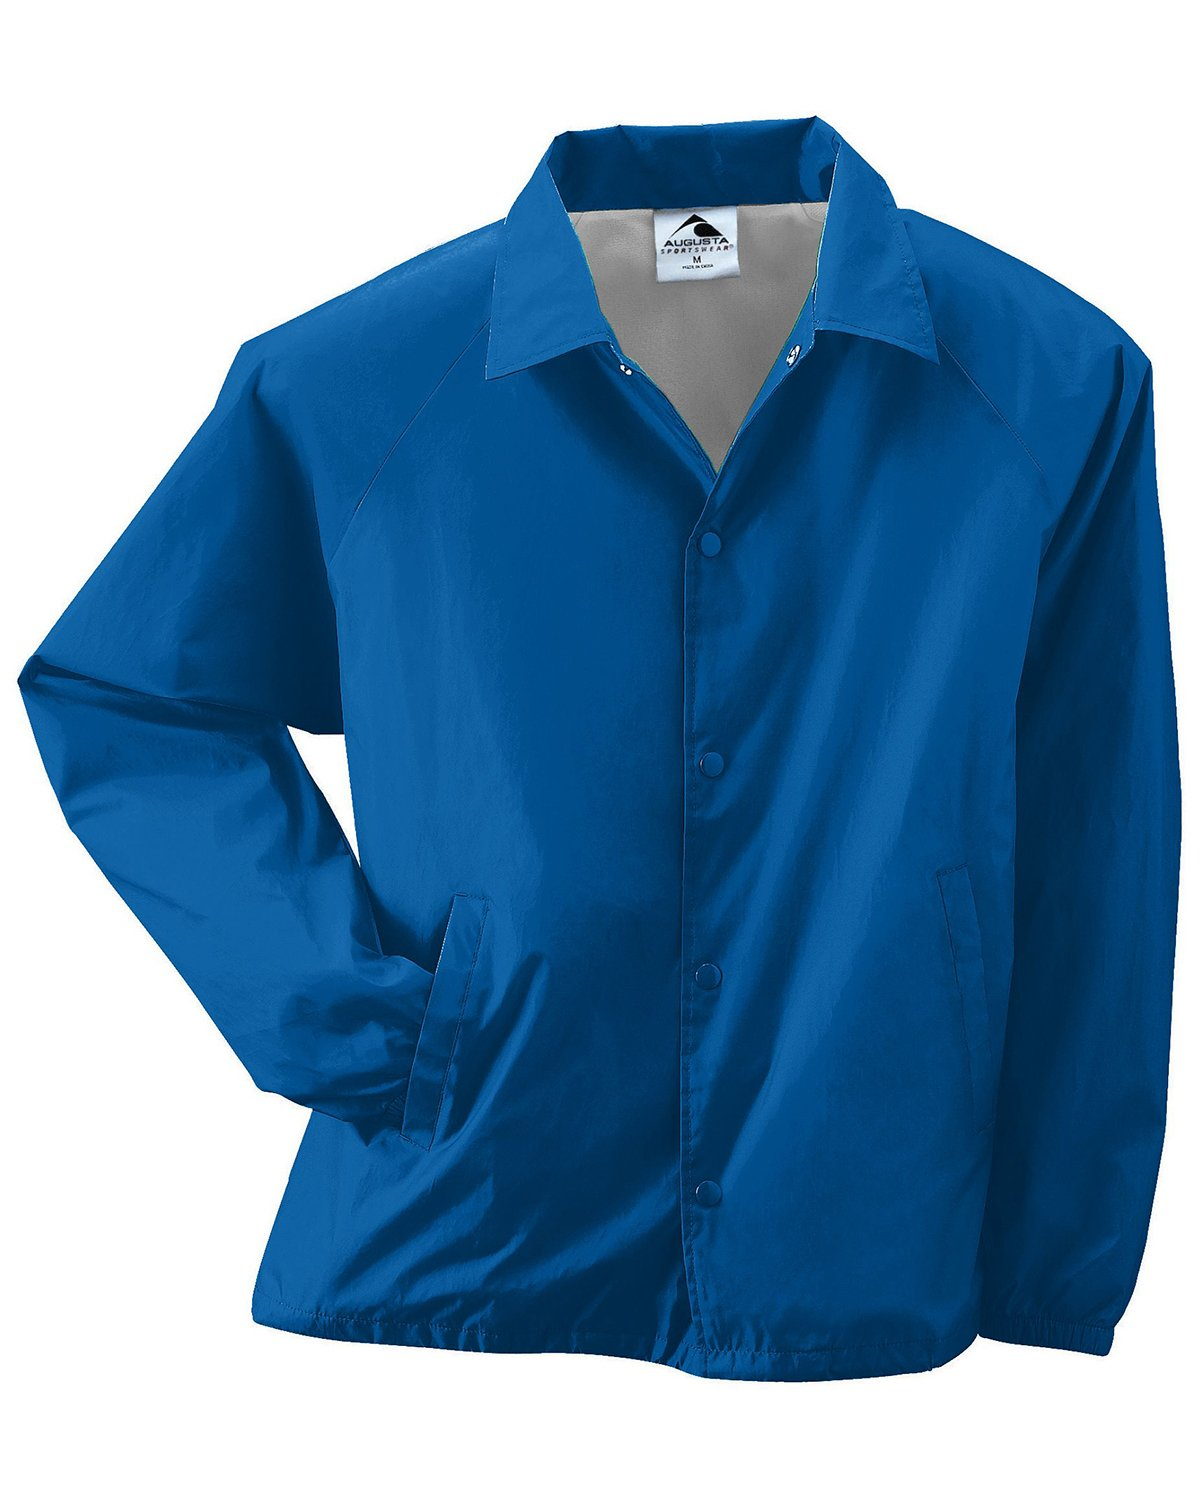 Augusta Sportswear mens Lined Nylon Coach's Jacket(3100)-ROYAL-4XL by Augusta Sportswear